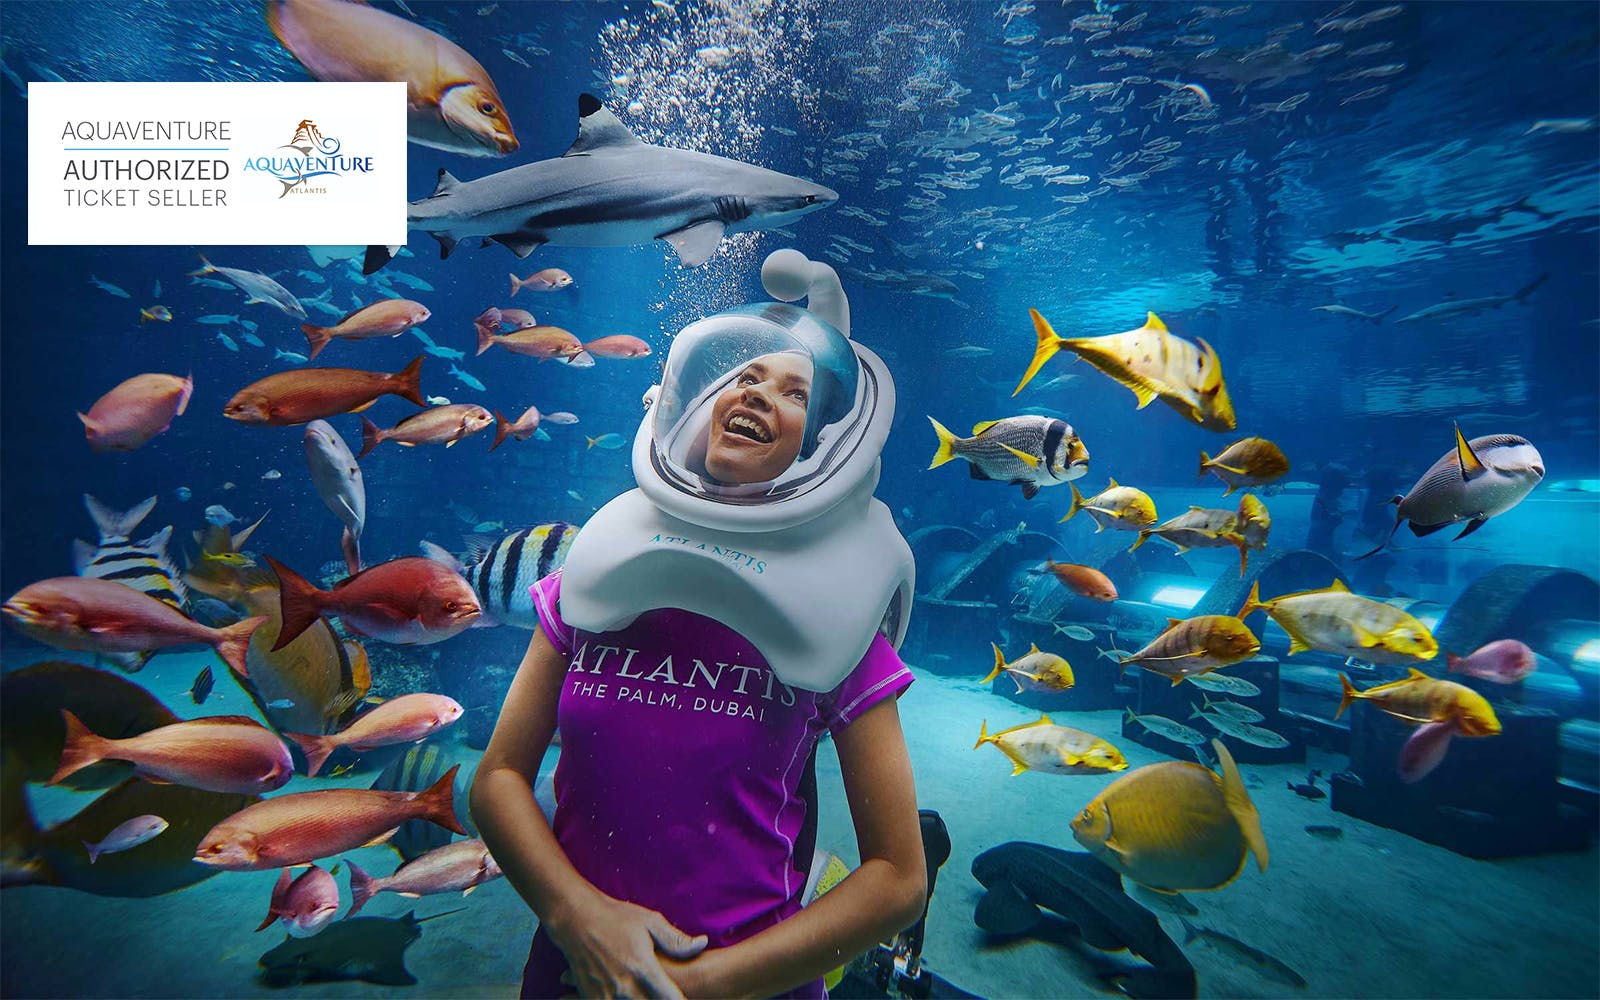 Shark Safari with Aquaventure Tickets